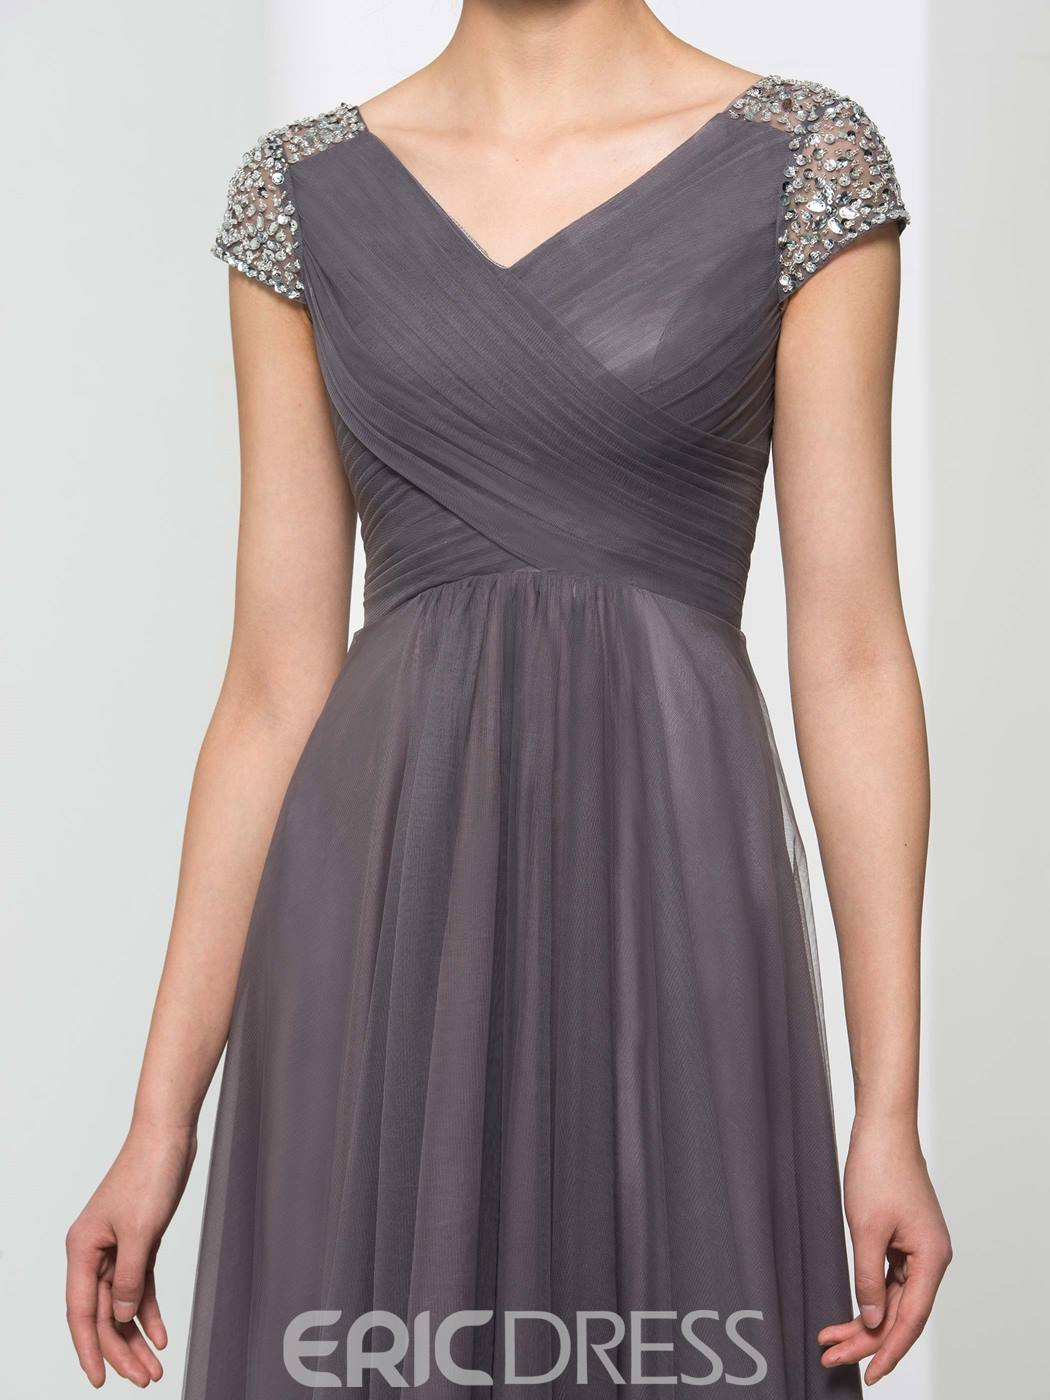 Ericdress V-Neck Short Sleeves Sequins High Low Evening Dress